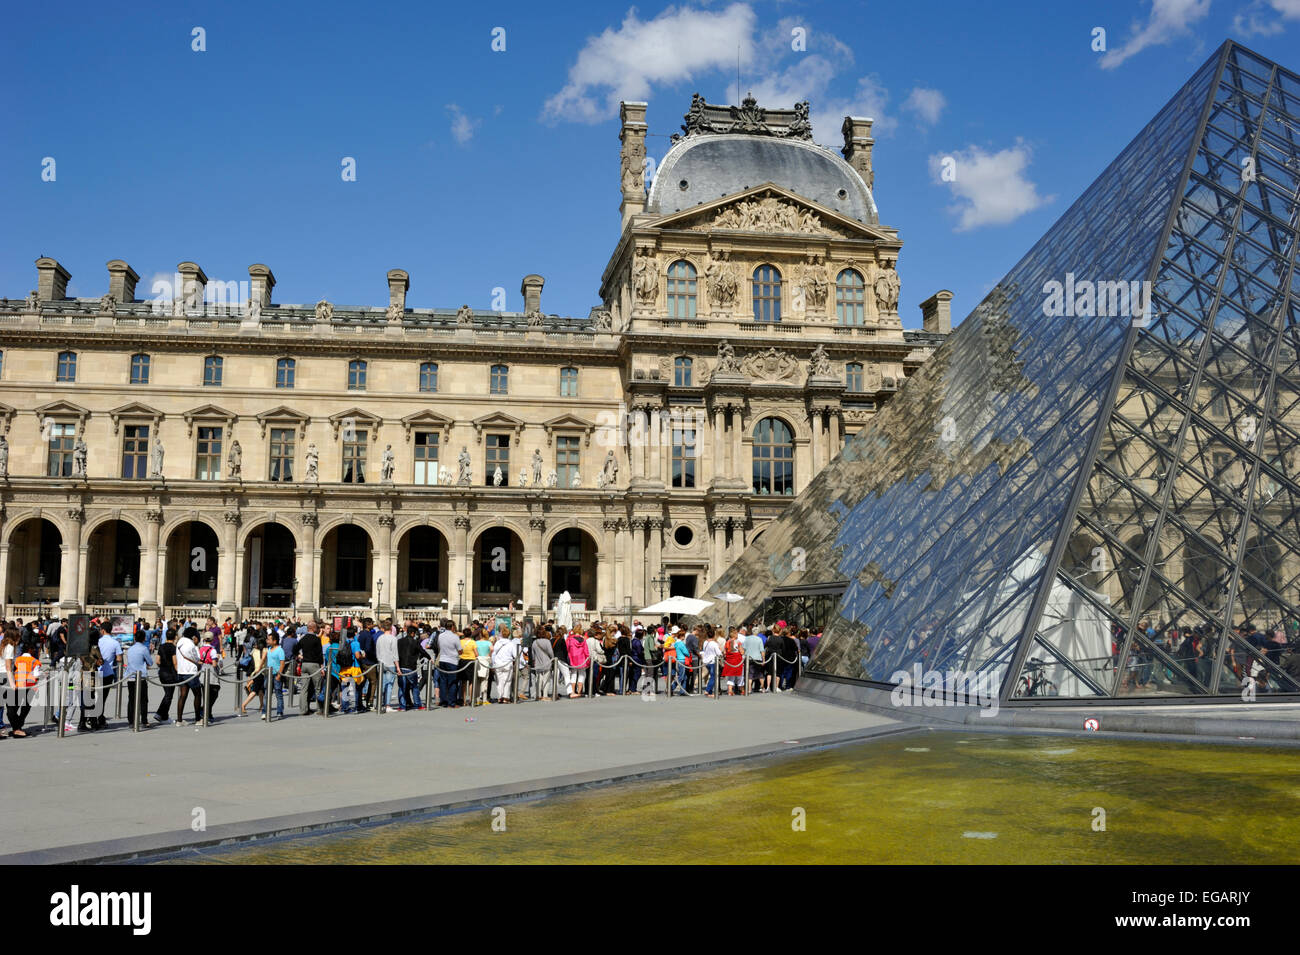 paris, the louvre museum, pyramid, the queue at the entrance - Stock Image